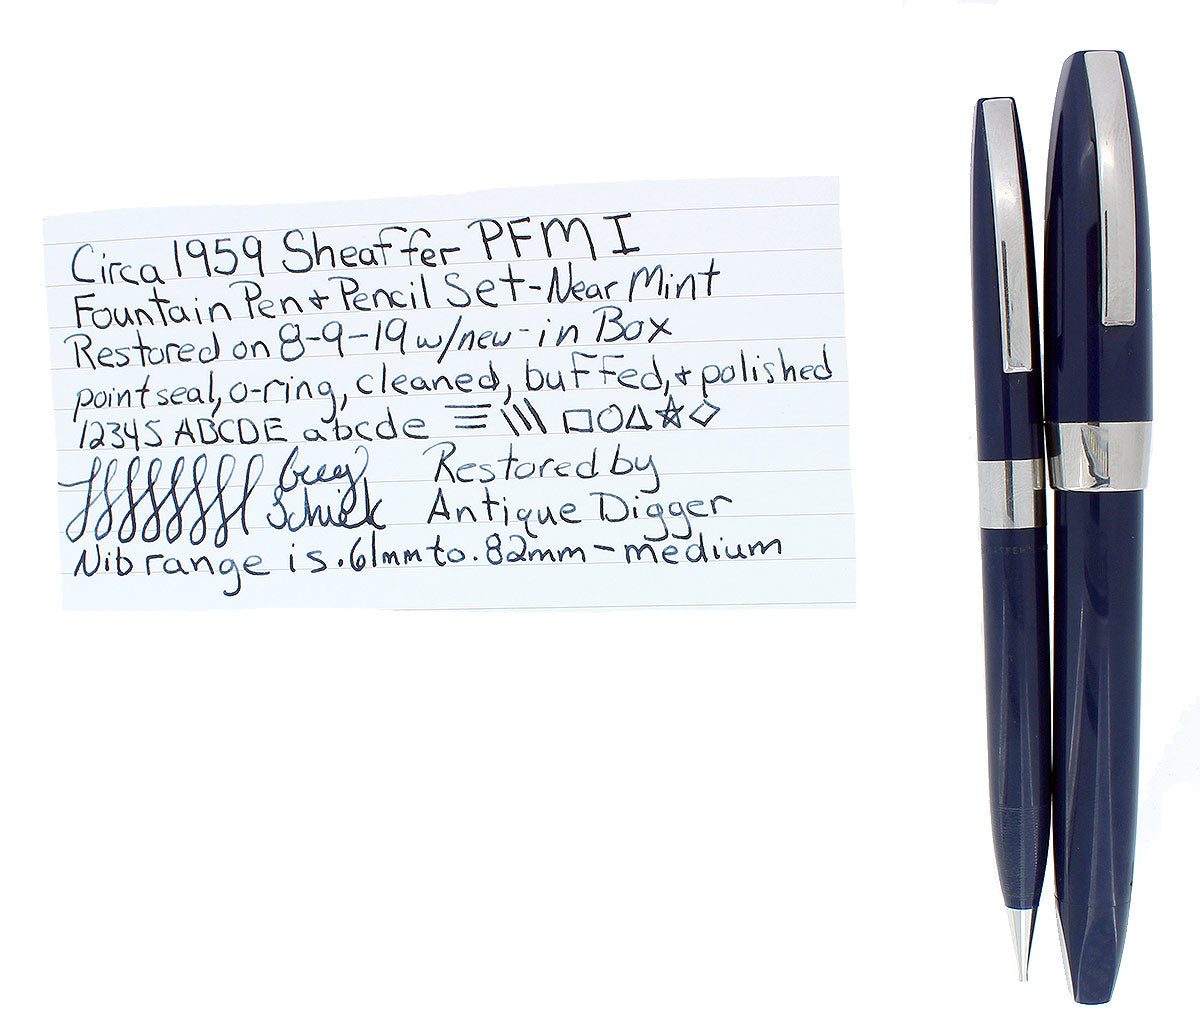 SHEAFFER BLUE PFM I FOUNTAIN PEN & PENCIL SET ORIGINAL BOX NEAR MINT COND OFFERED BY ANTIQUE DIGGER